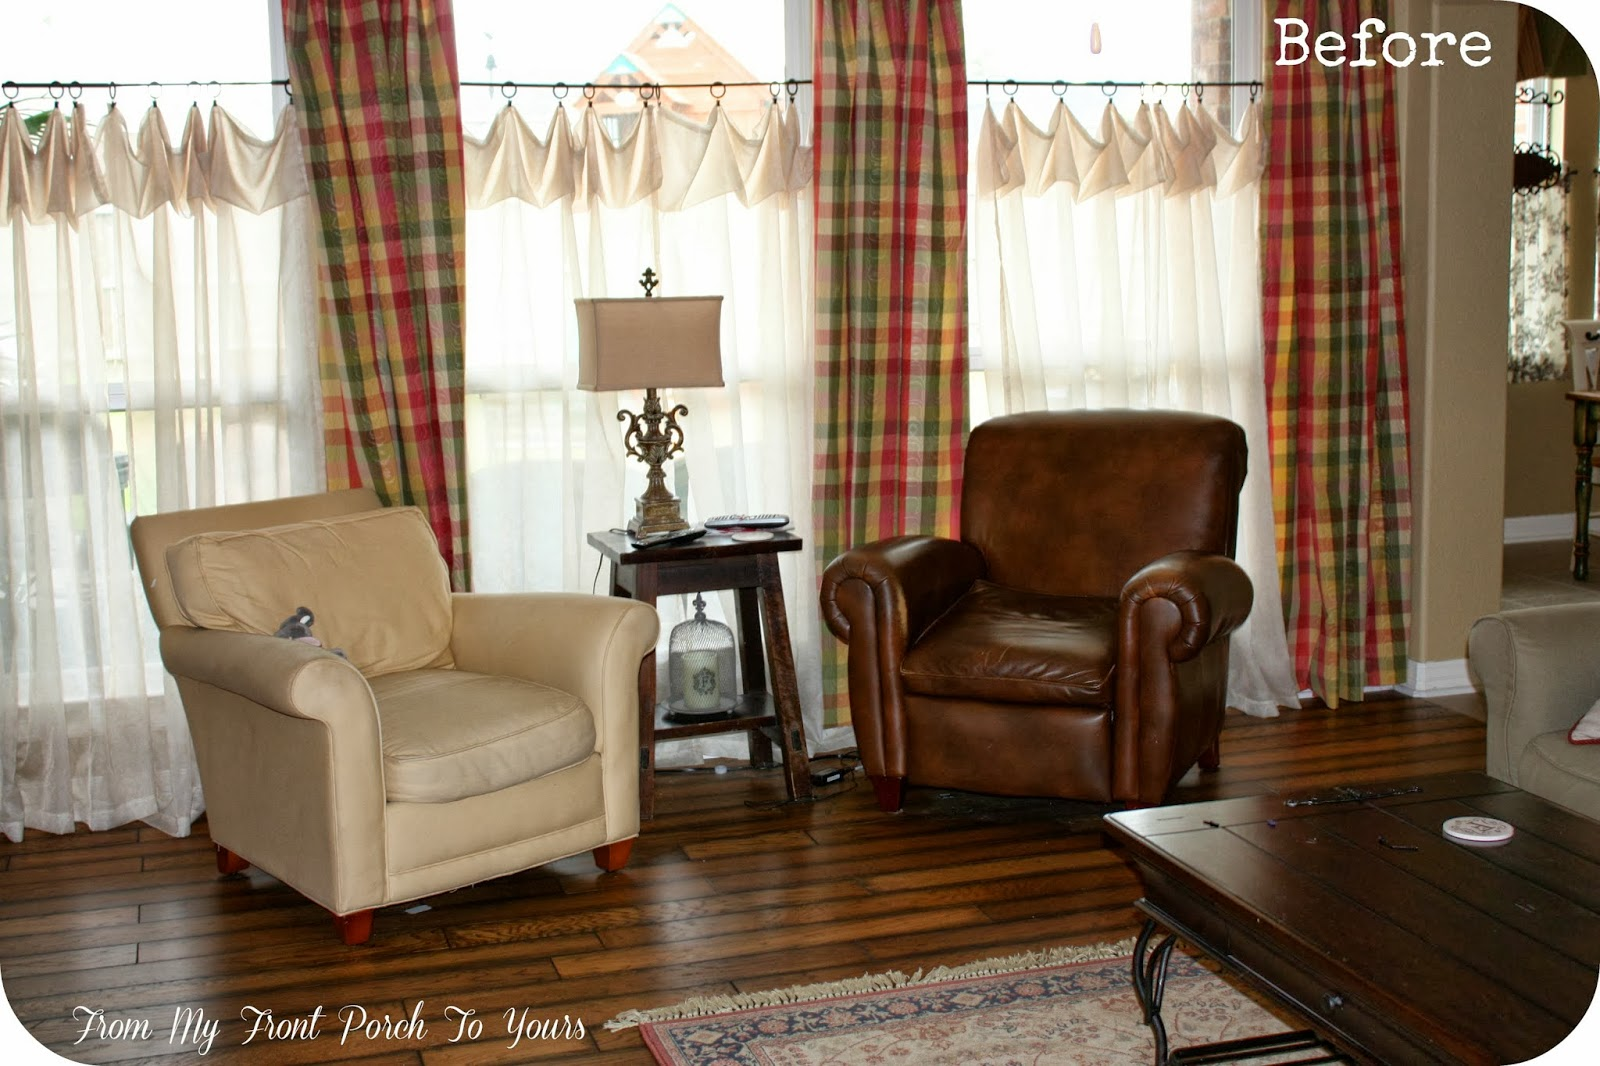 From My Front Porch To Yours French Farmhouse Living Room Reveal